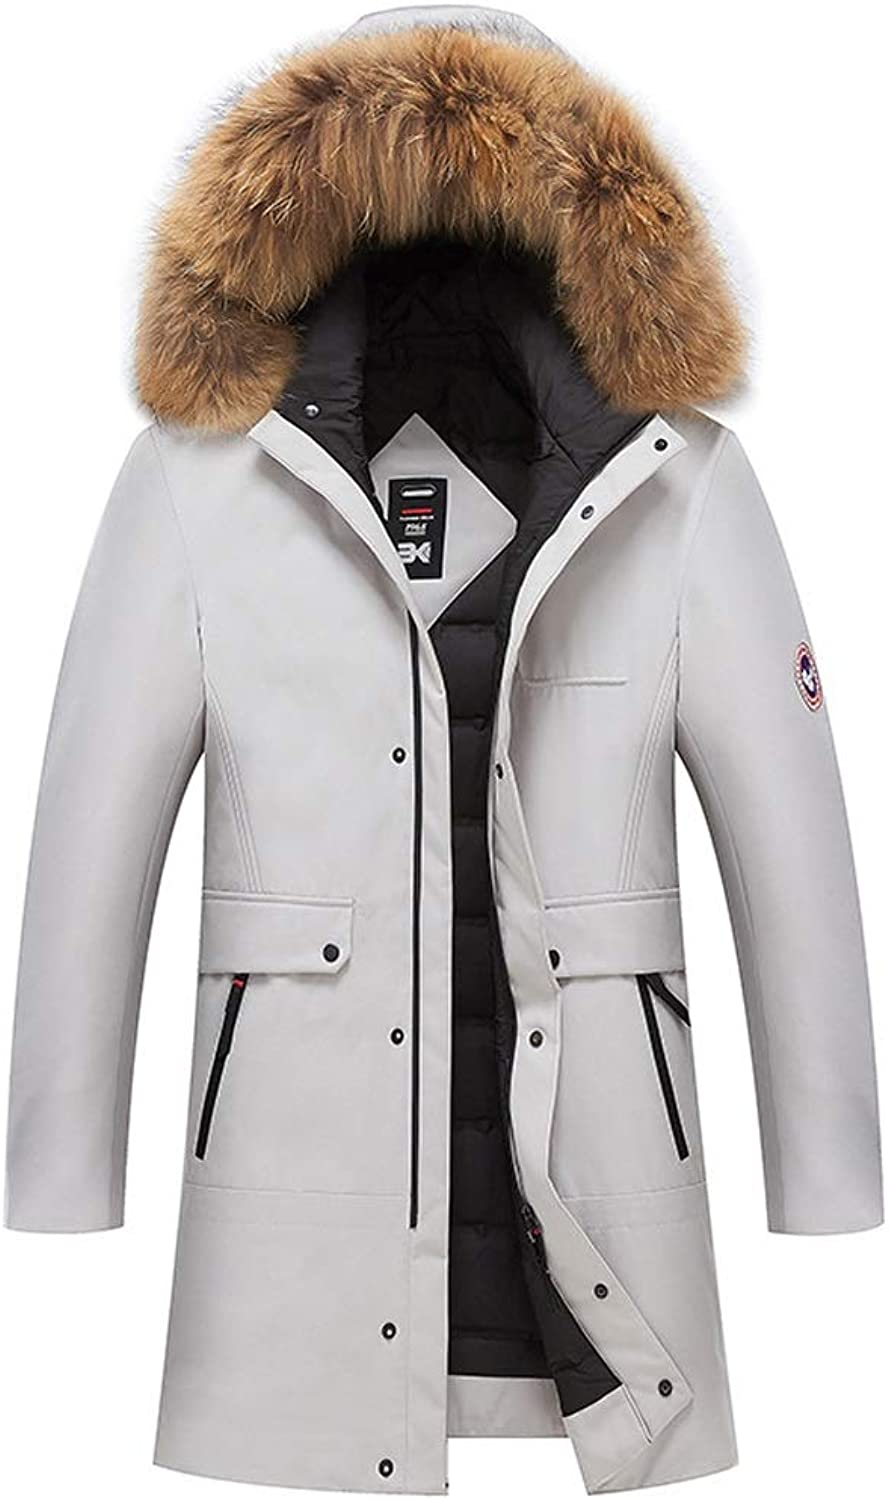 New Down Jacket, Men's Trend Long Hooded Jacket with Fur Collar, Winter Outdoor Cold Padded Warm Clothing, Suitable for Cold Weather (color   White, Size   XXXL)